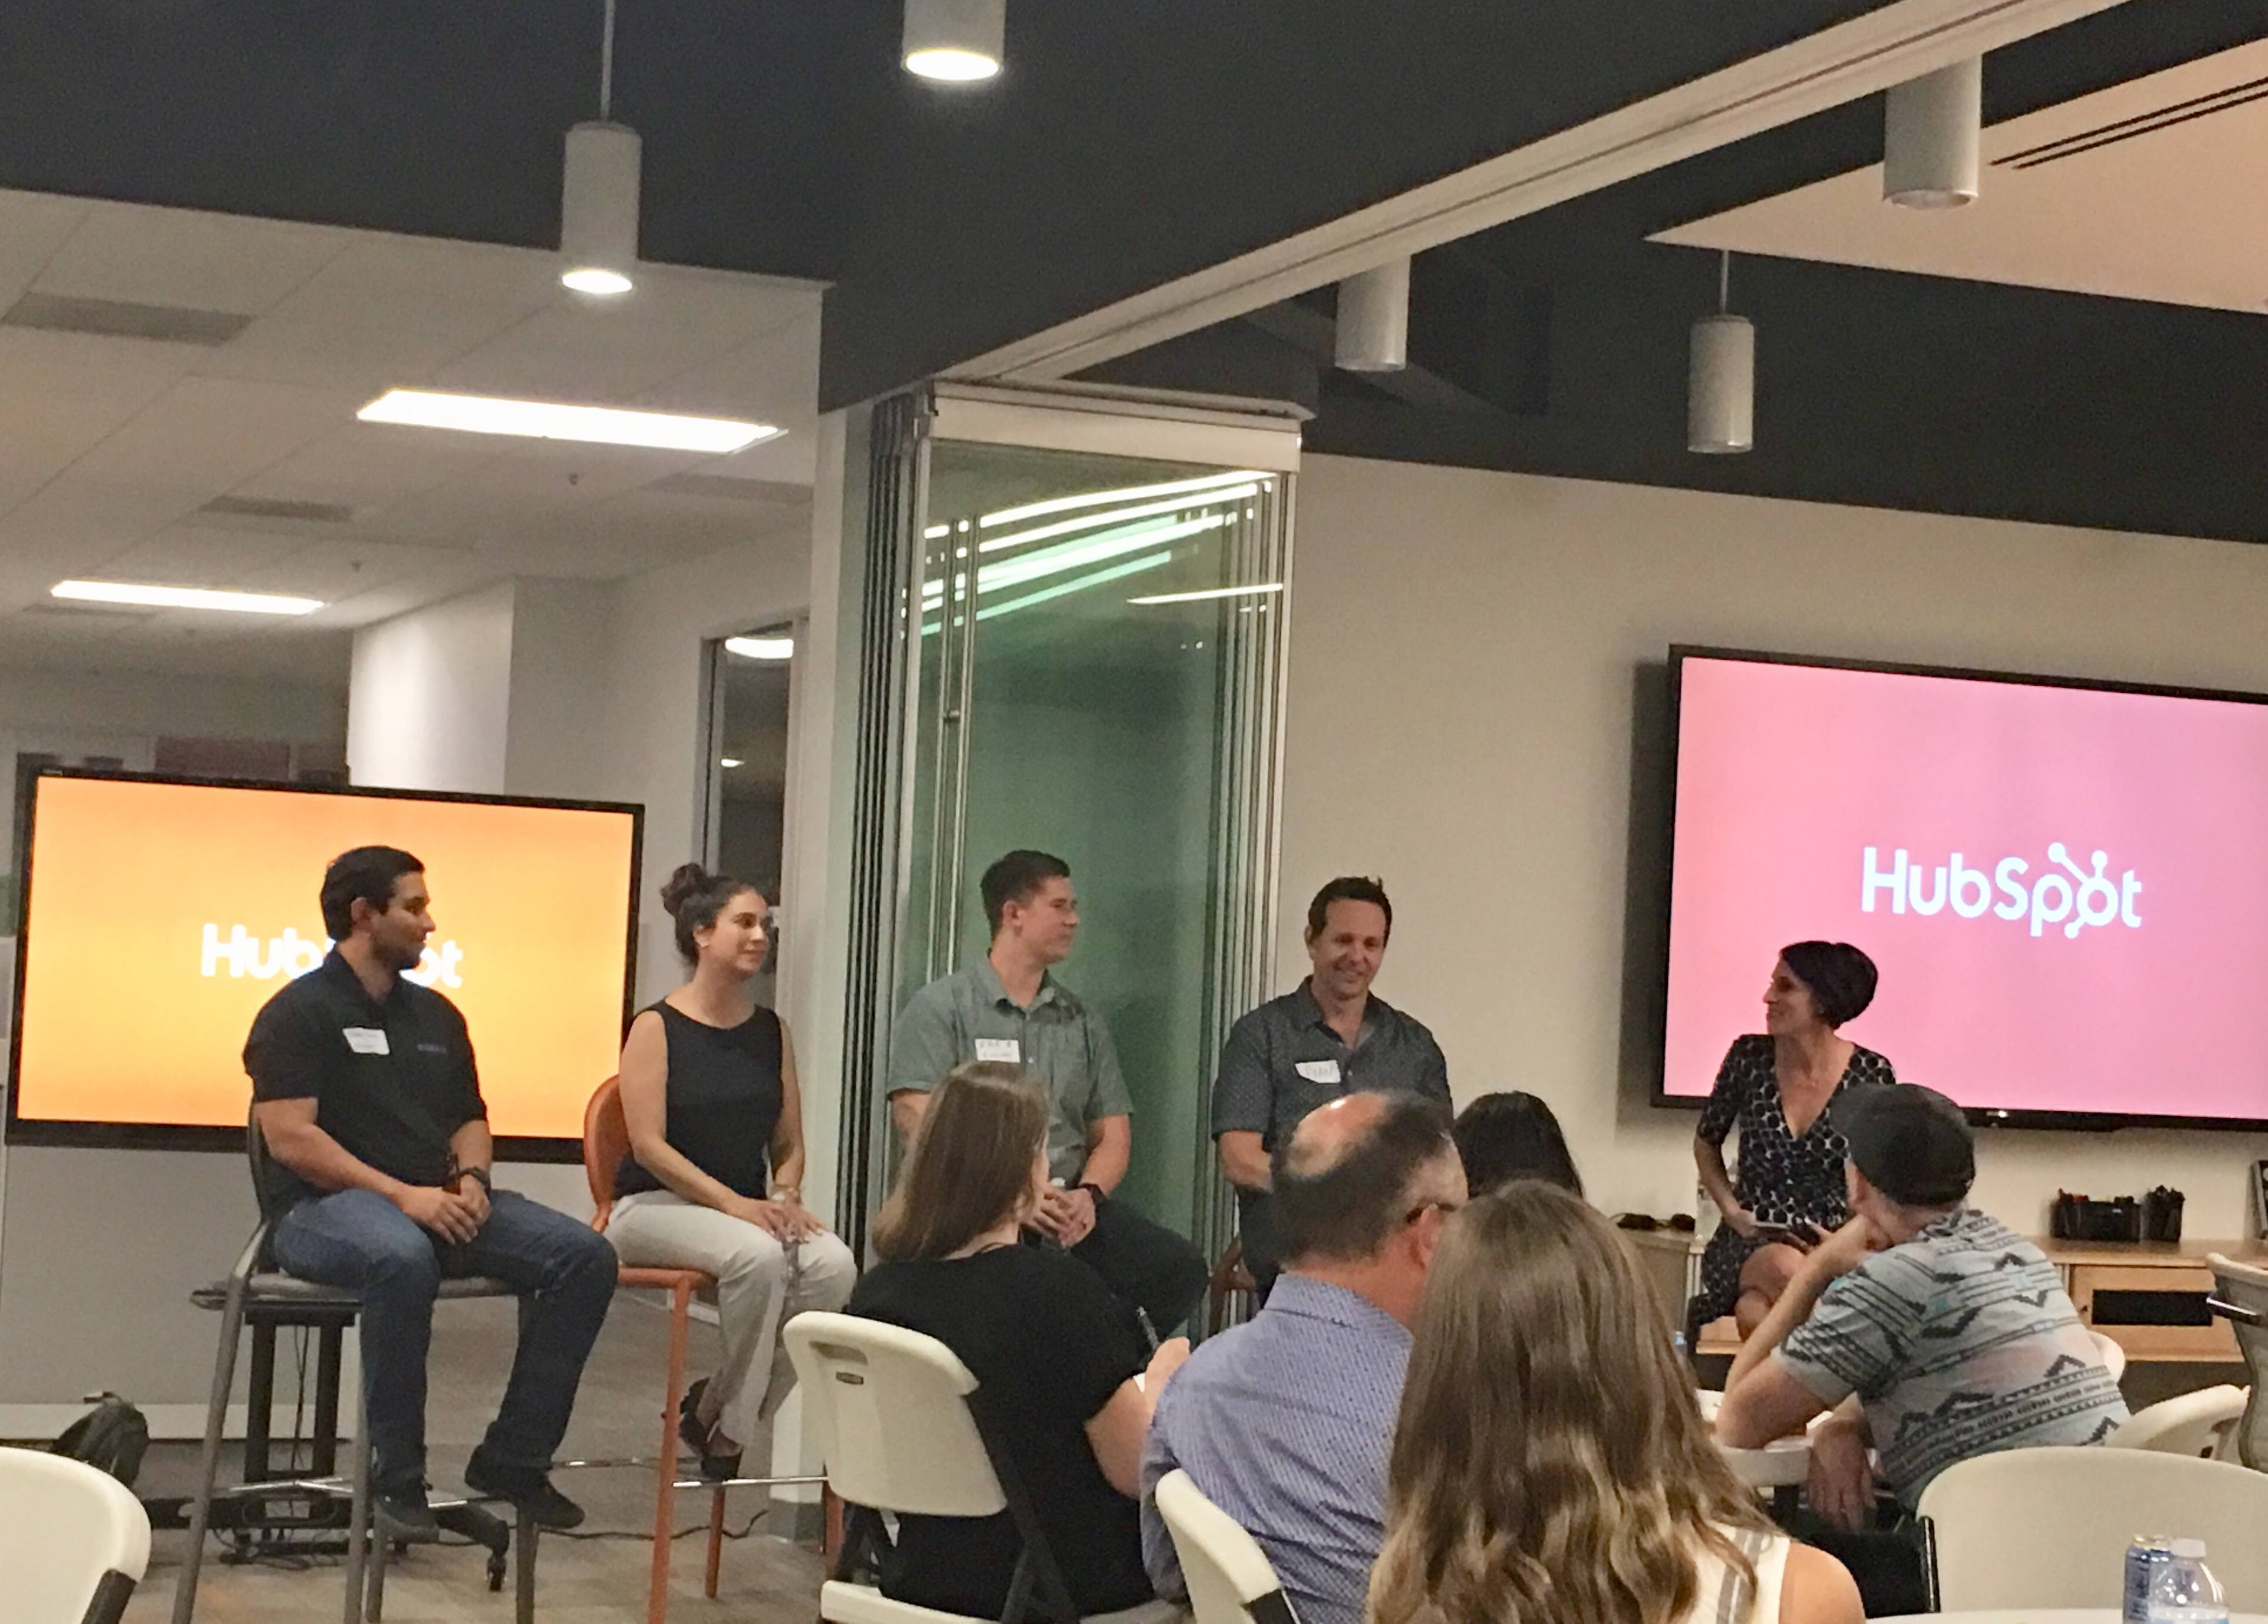 HubSpot's-HUG-OC-User-Panel-Share's-Secrets-How-to-Improve-Inbound-Marketing.jpg